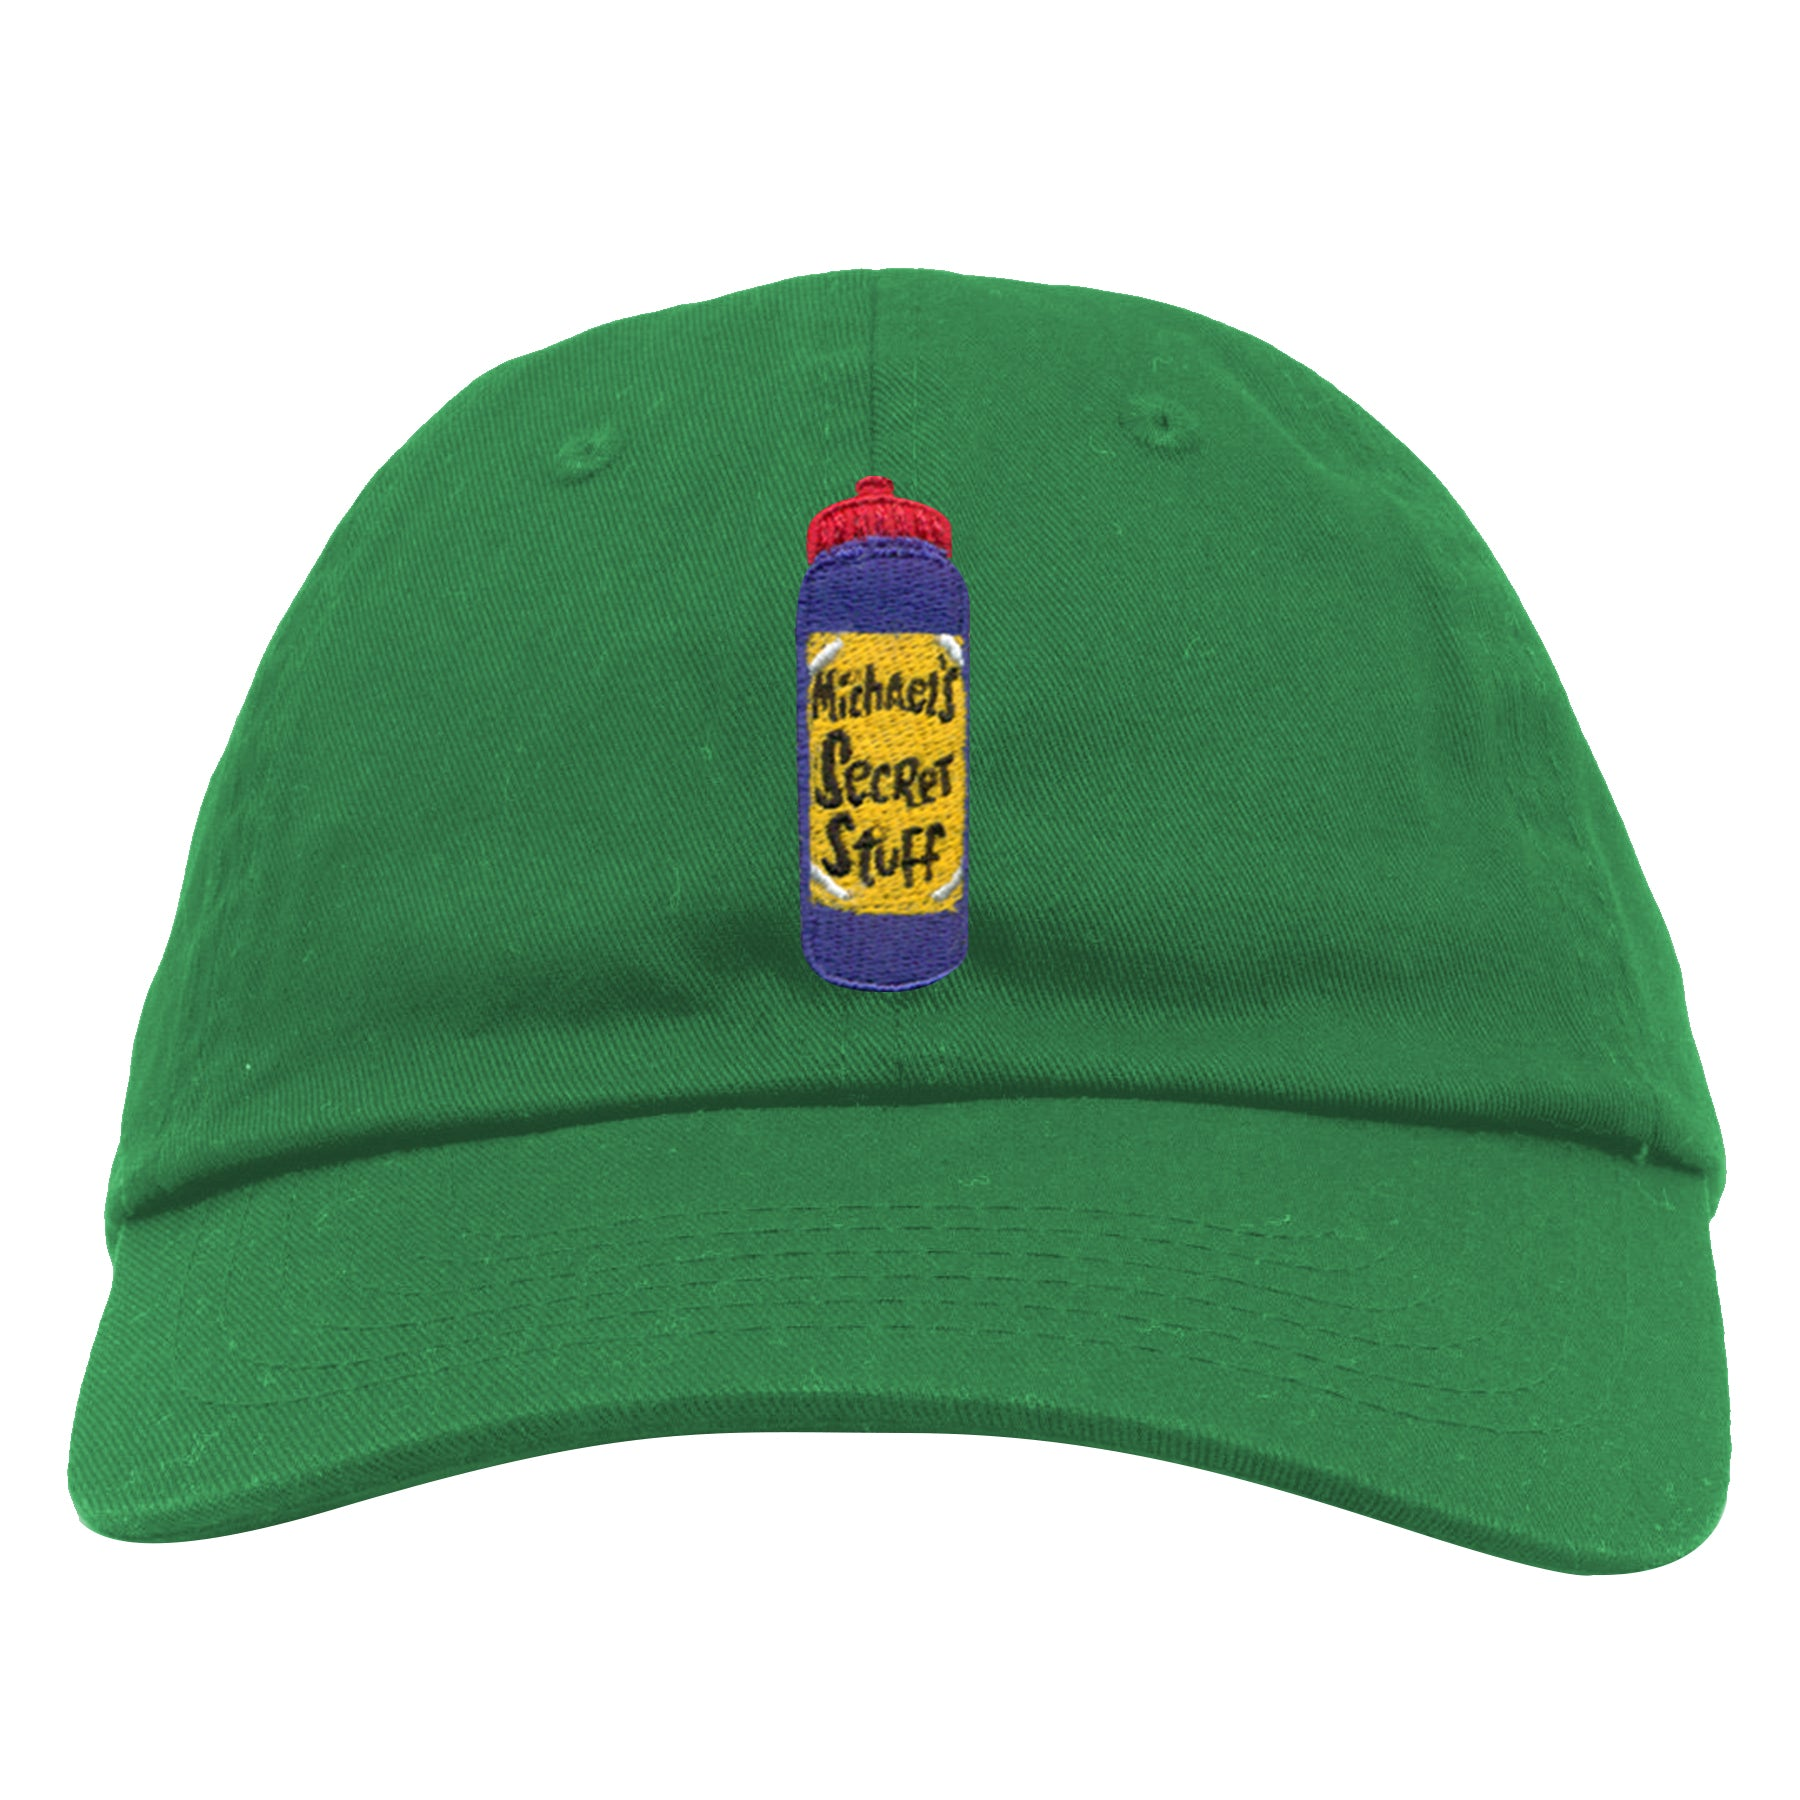 embroidered on the front of the green michael s secret stuff is the  michael s secret stuff bottle 6c08ce71332